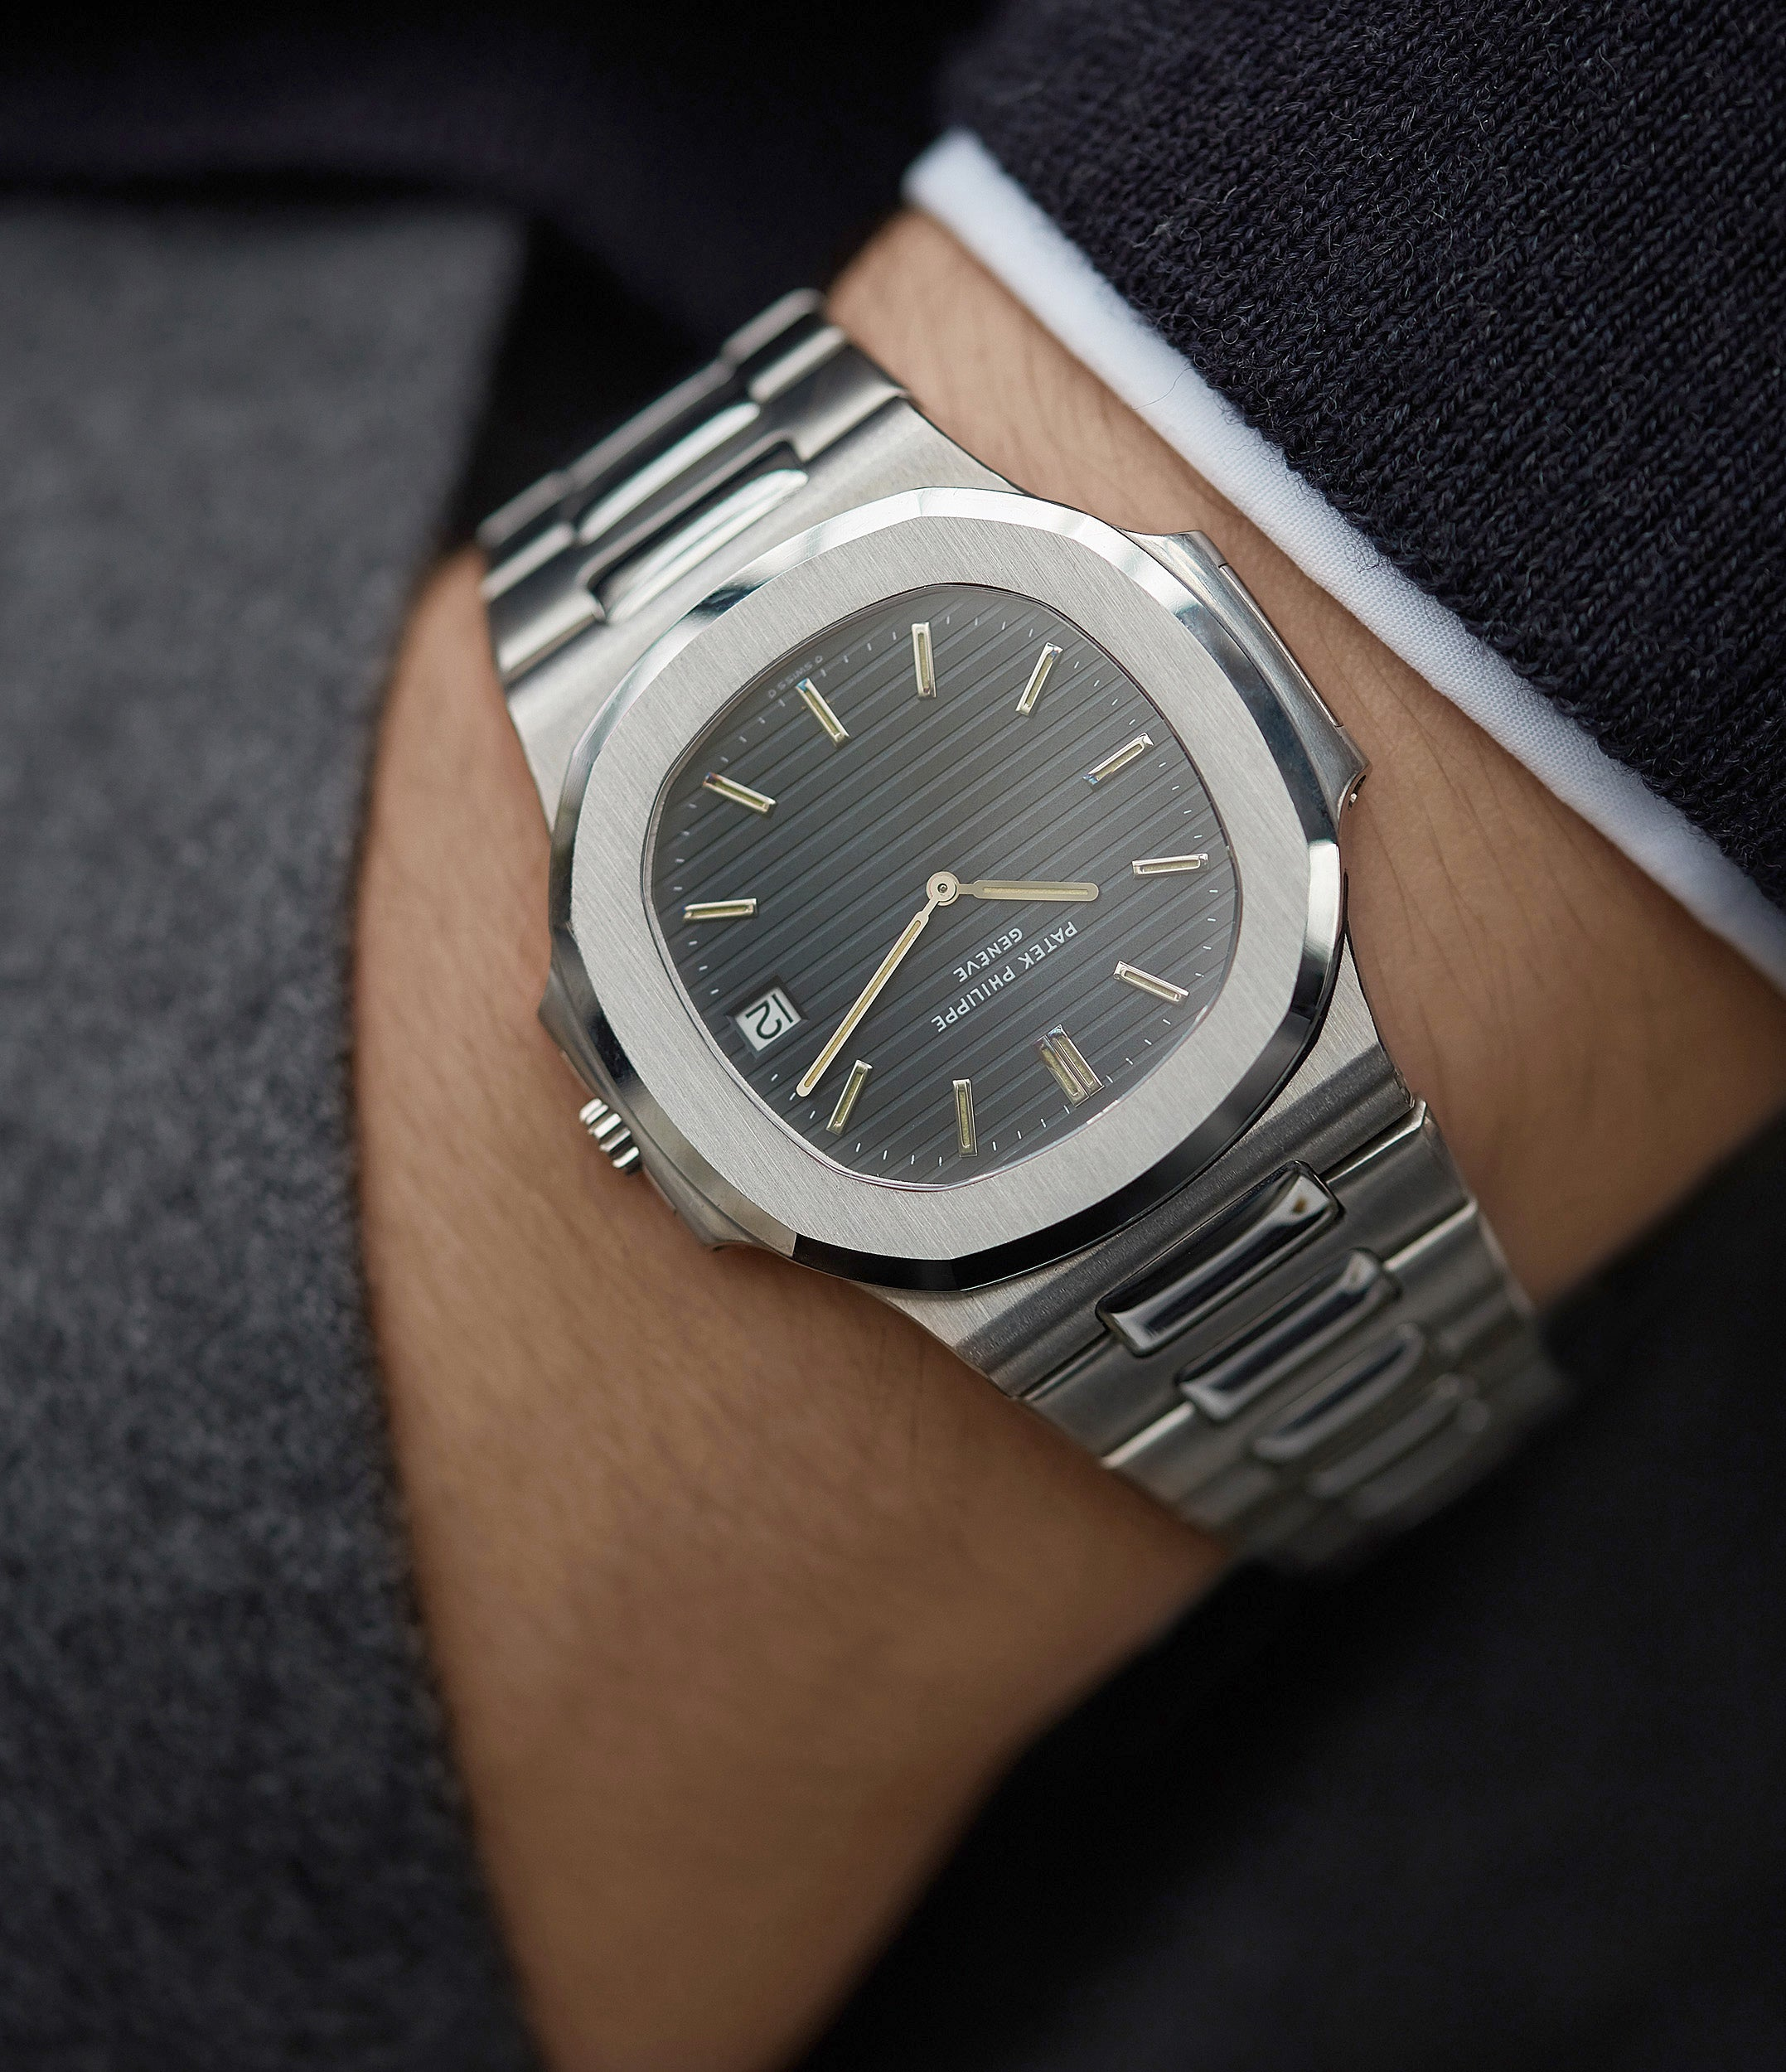 3700/001A Patek Philippe Nautilus vintage sport watch for sale online at A Collected Man London UK specialist of rare watches